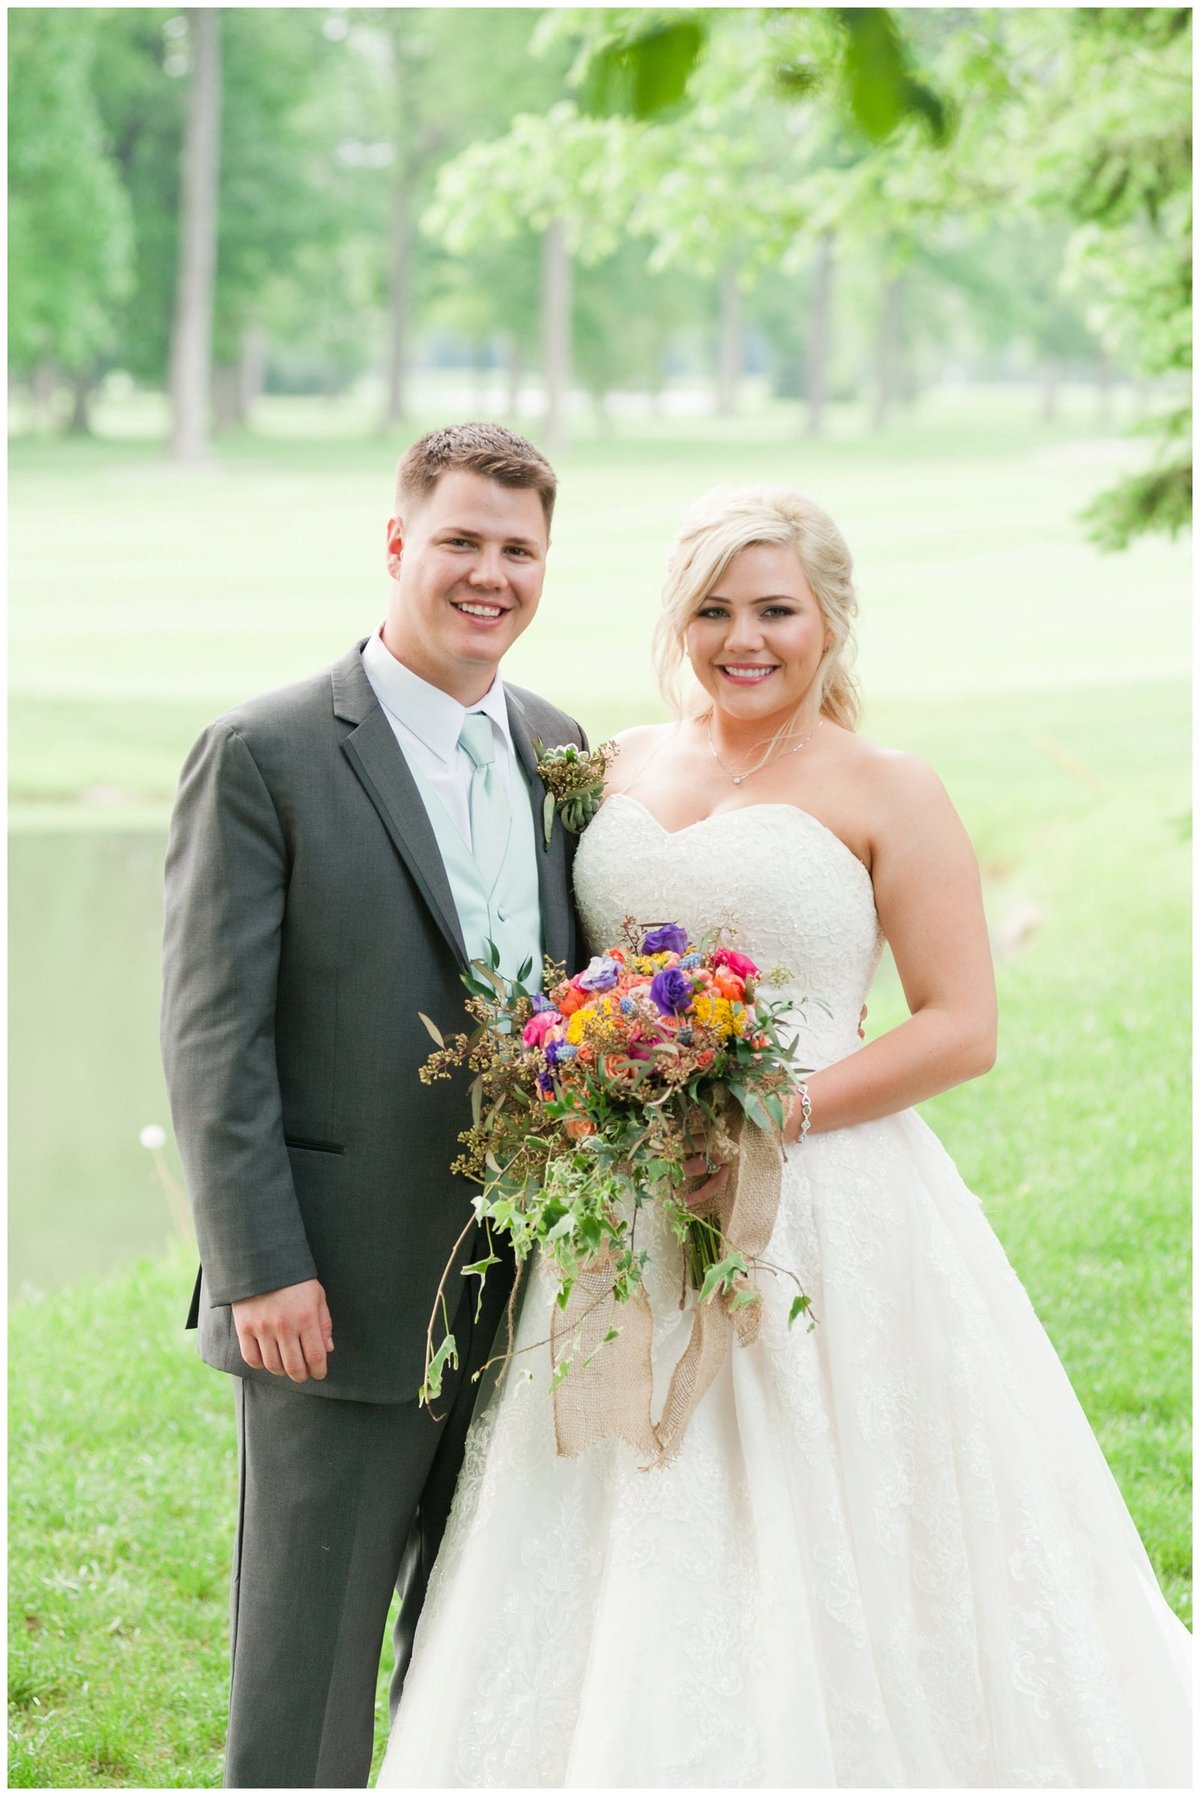 Heritage golf and country club wedding hilliard ohio wedding photos_0068